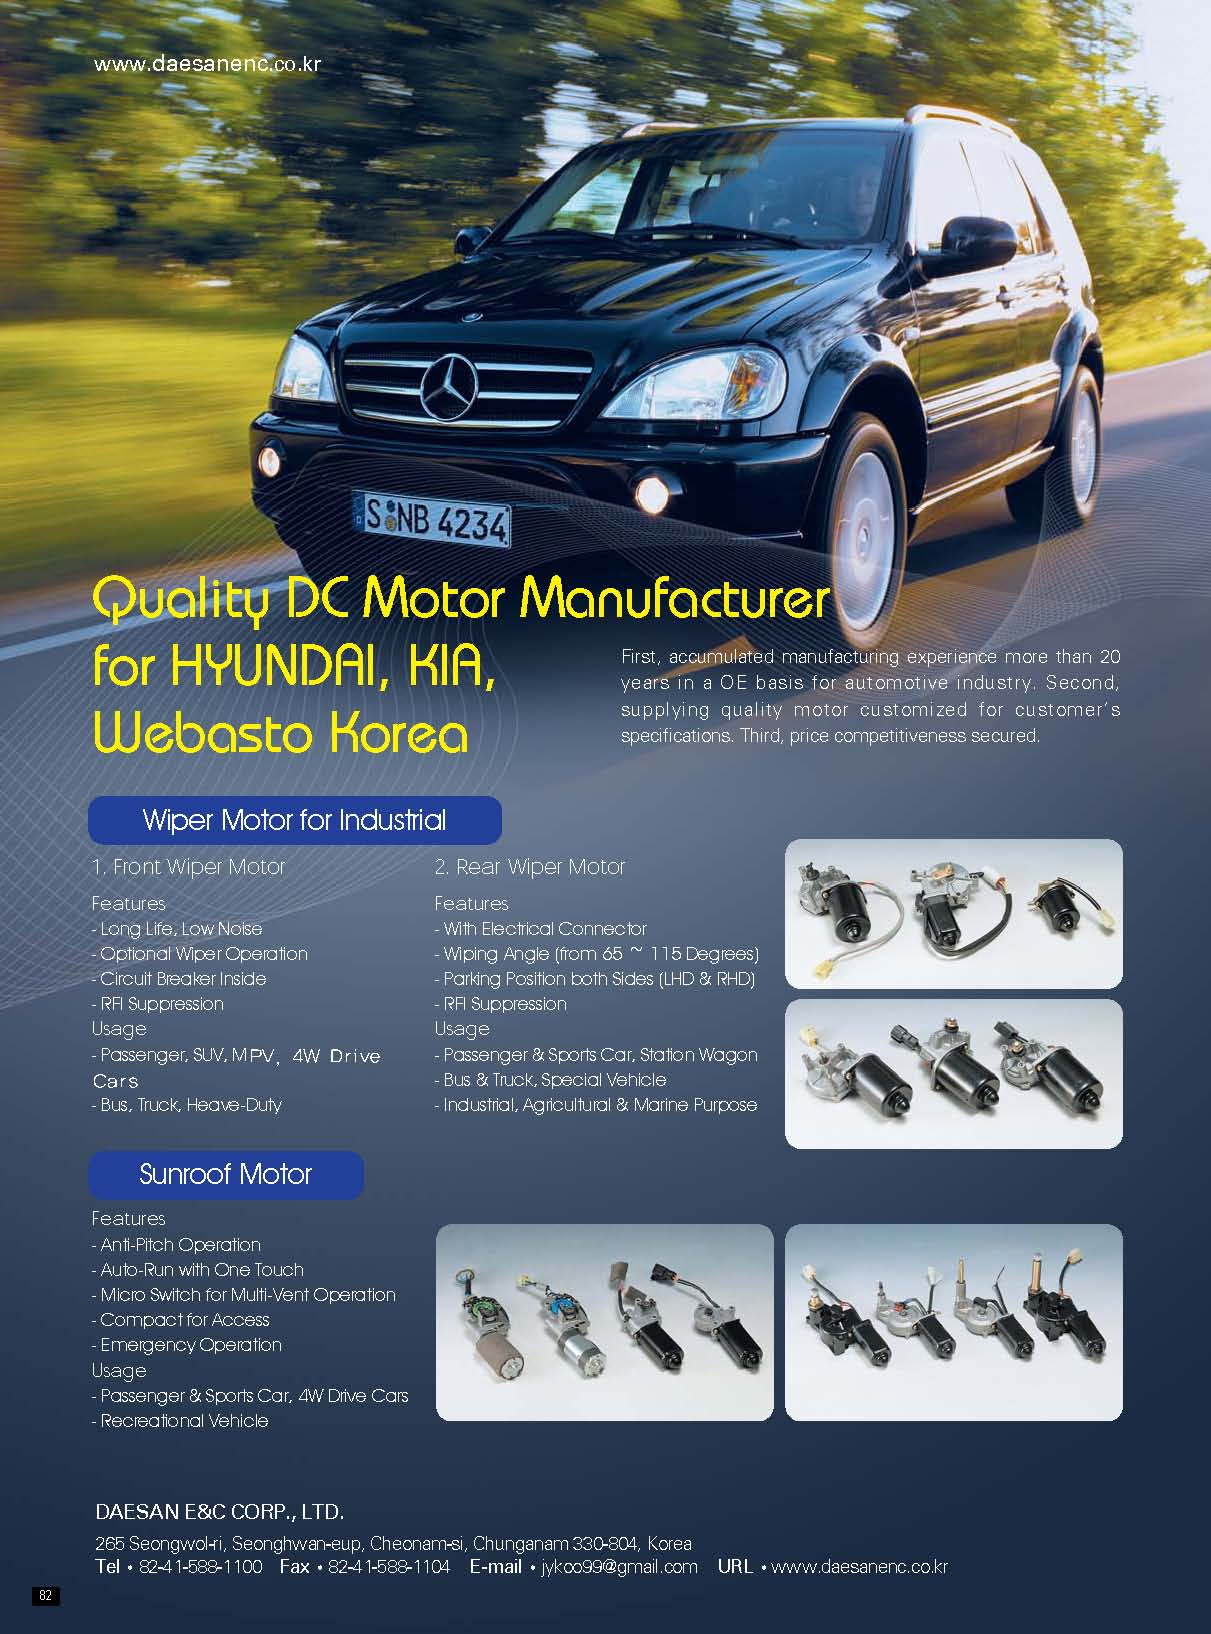 motor for wiper, sunroof, actuator Manufacturers,motor for wiper